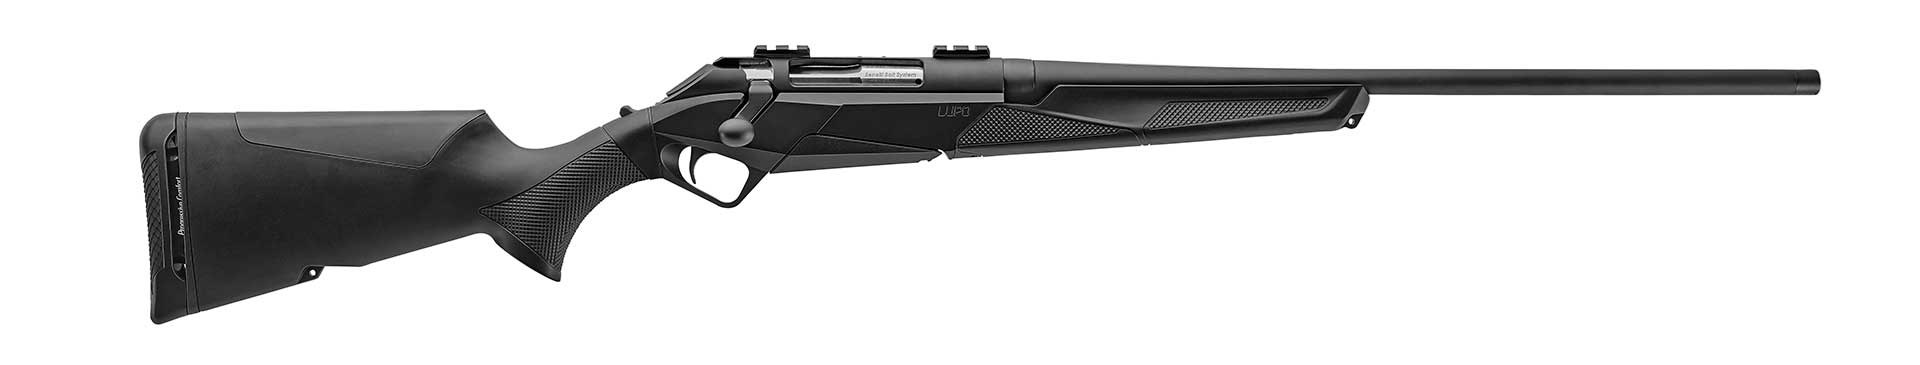 Benelli Lupo rifle right side shown on white.